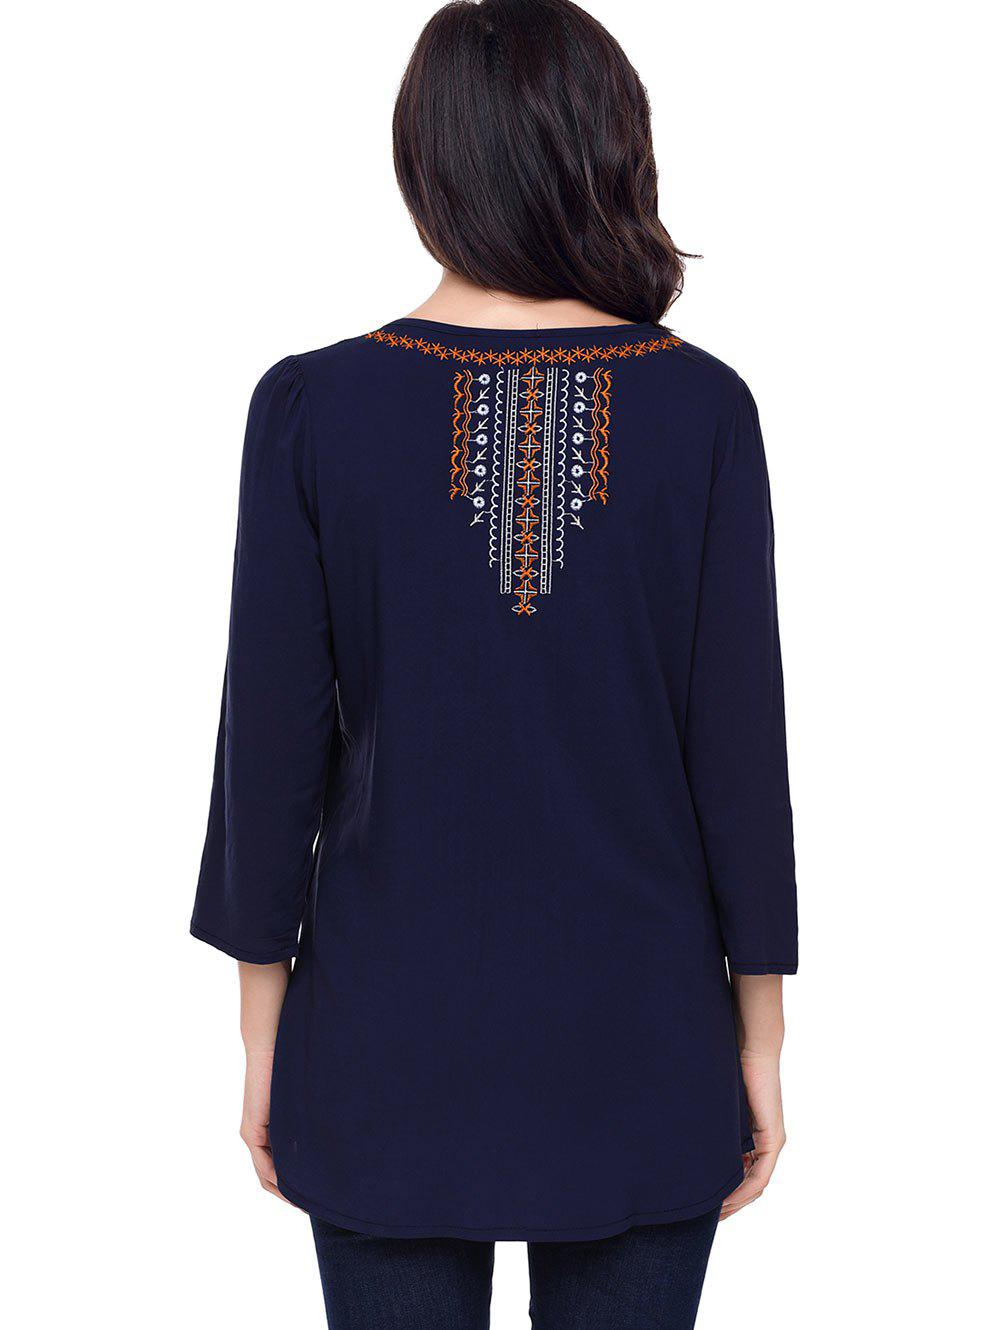 Ethnic Embroidered Tunic Blouse - BLUE XL